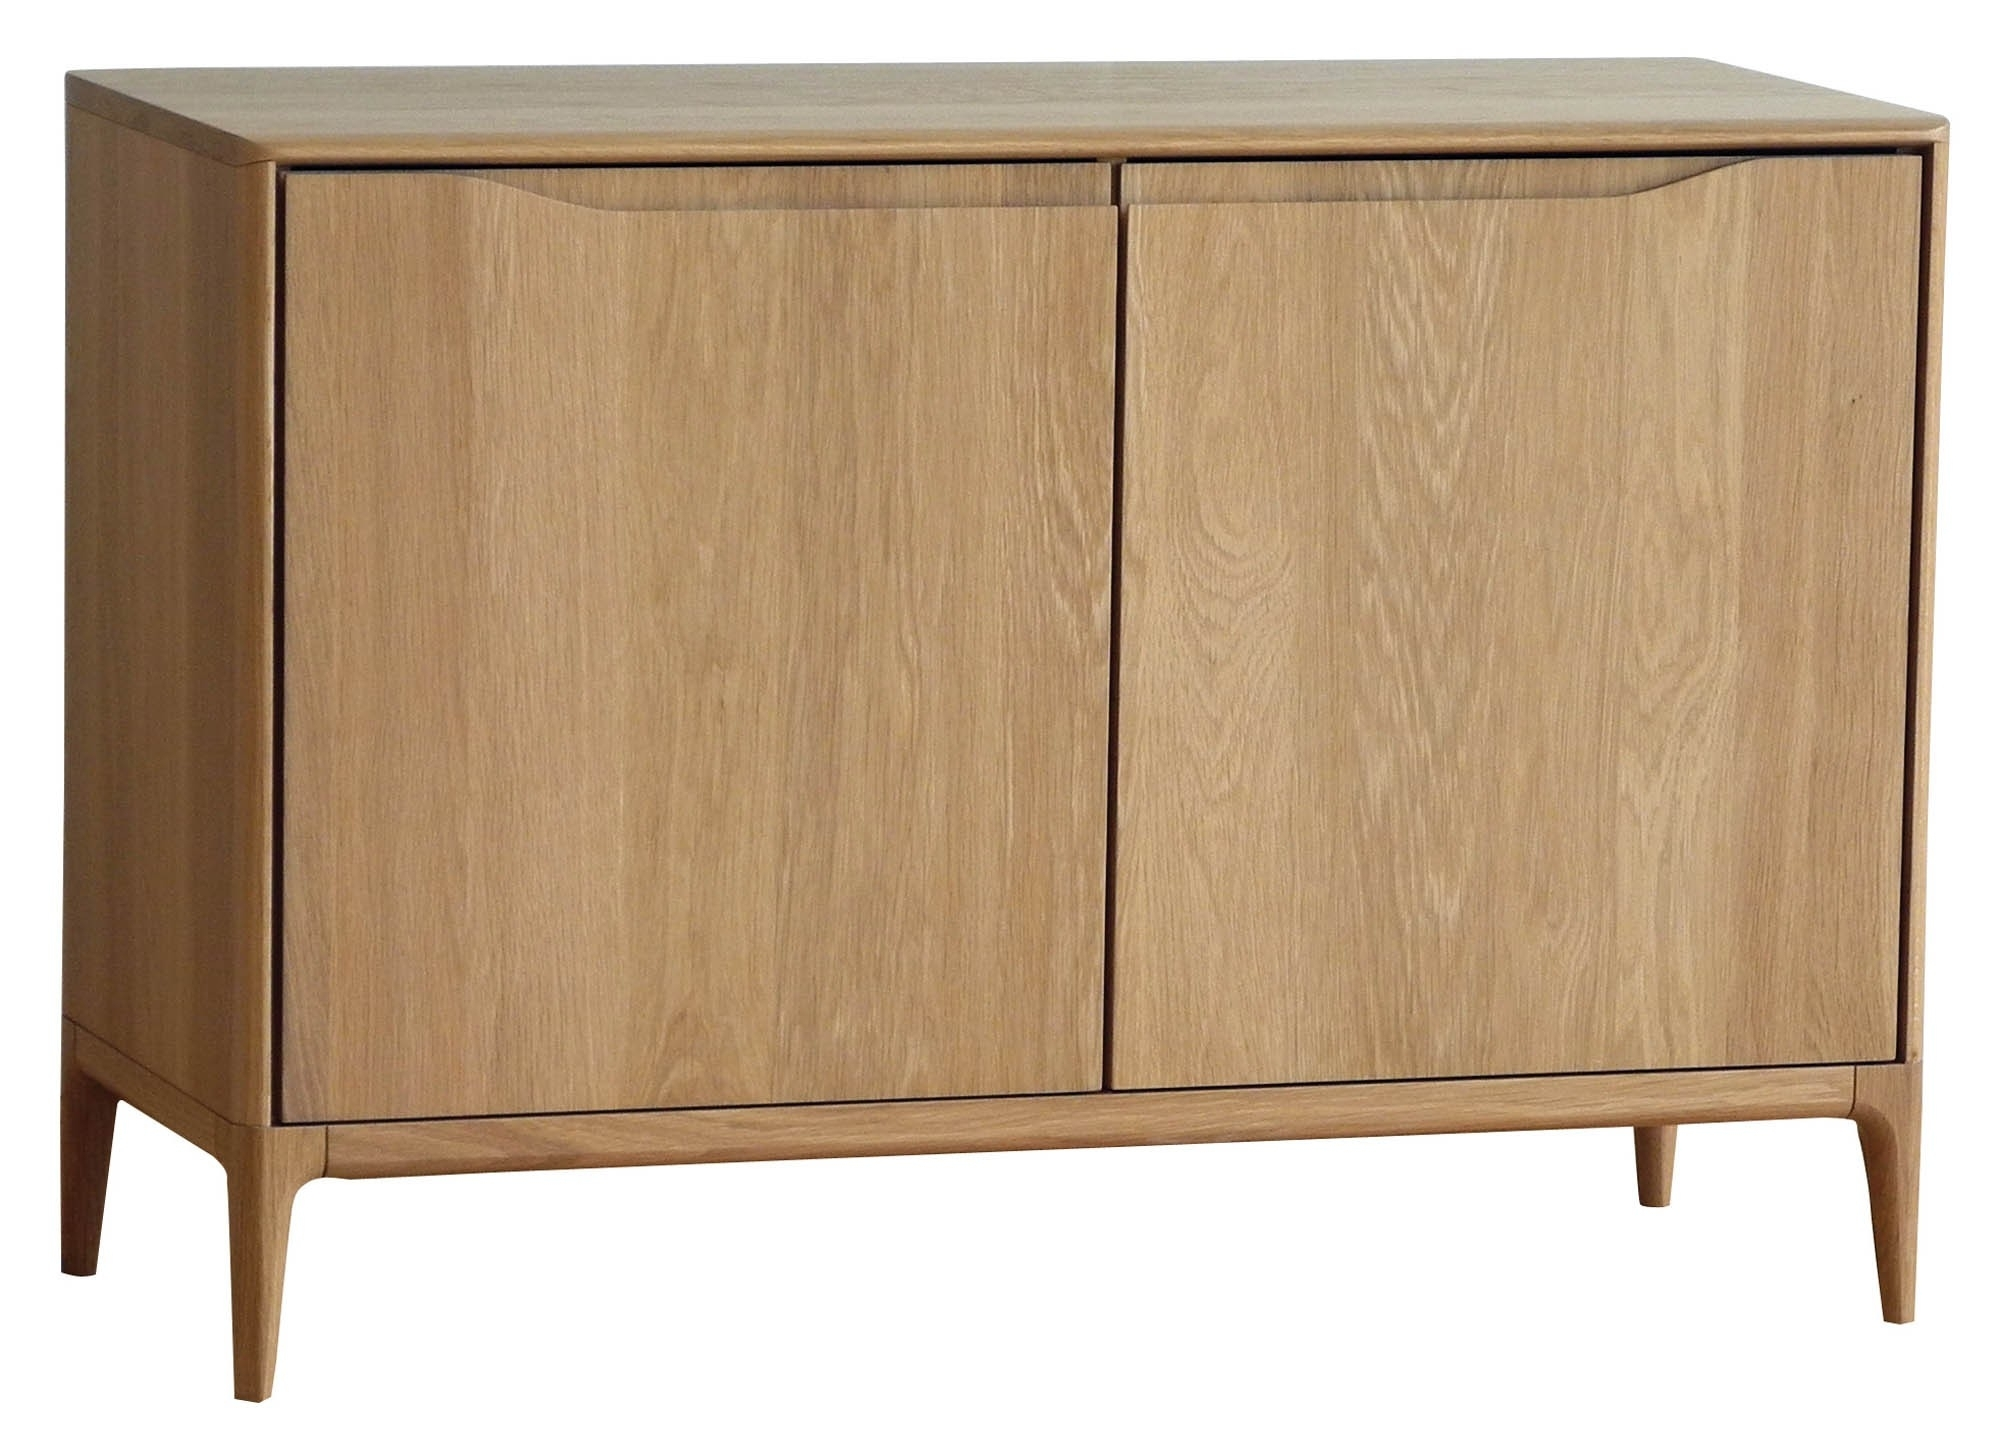 Ercol Romana 2647 2 Door Sideboard | Tr Hayes   Furniture Store, Bath With Natural Oak Wood 2 Door Sideboards (Photo 17 of 30)